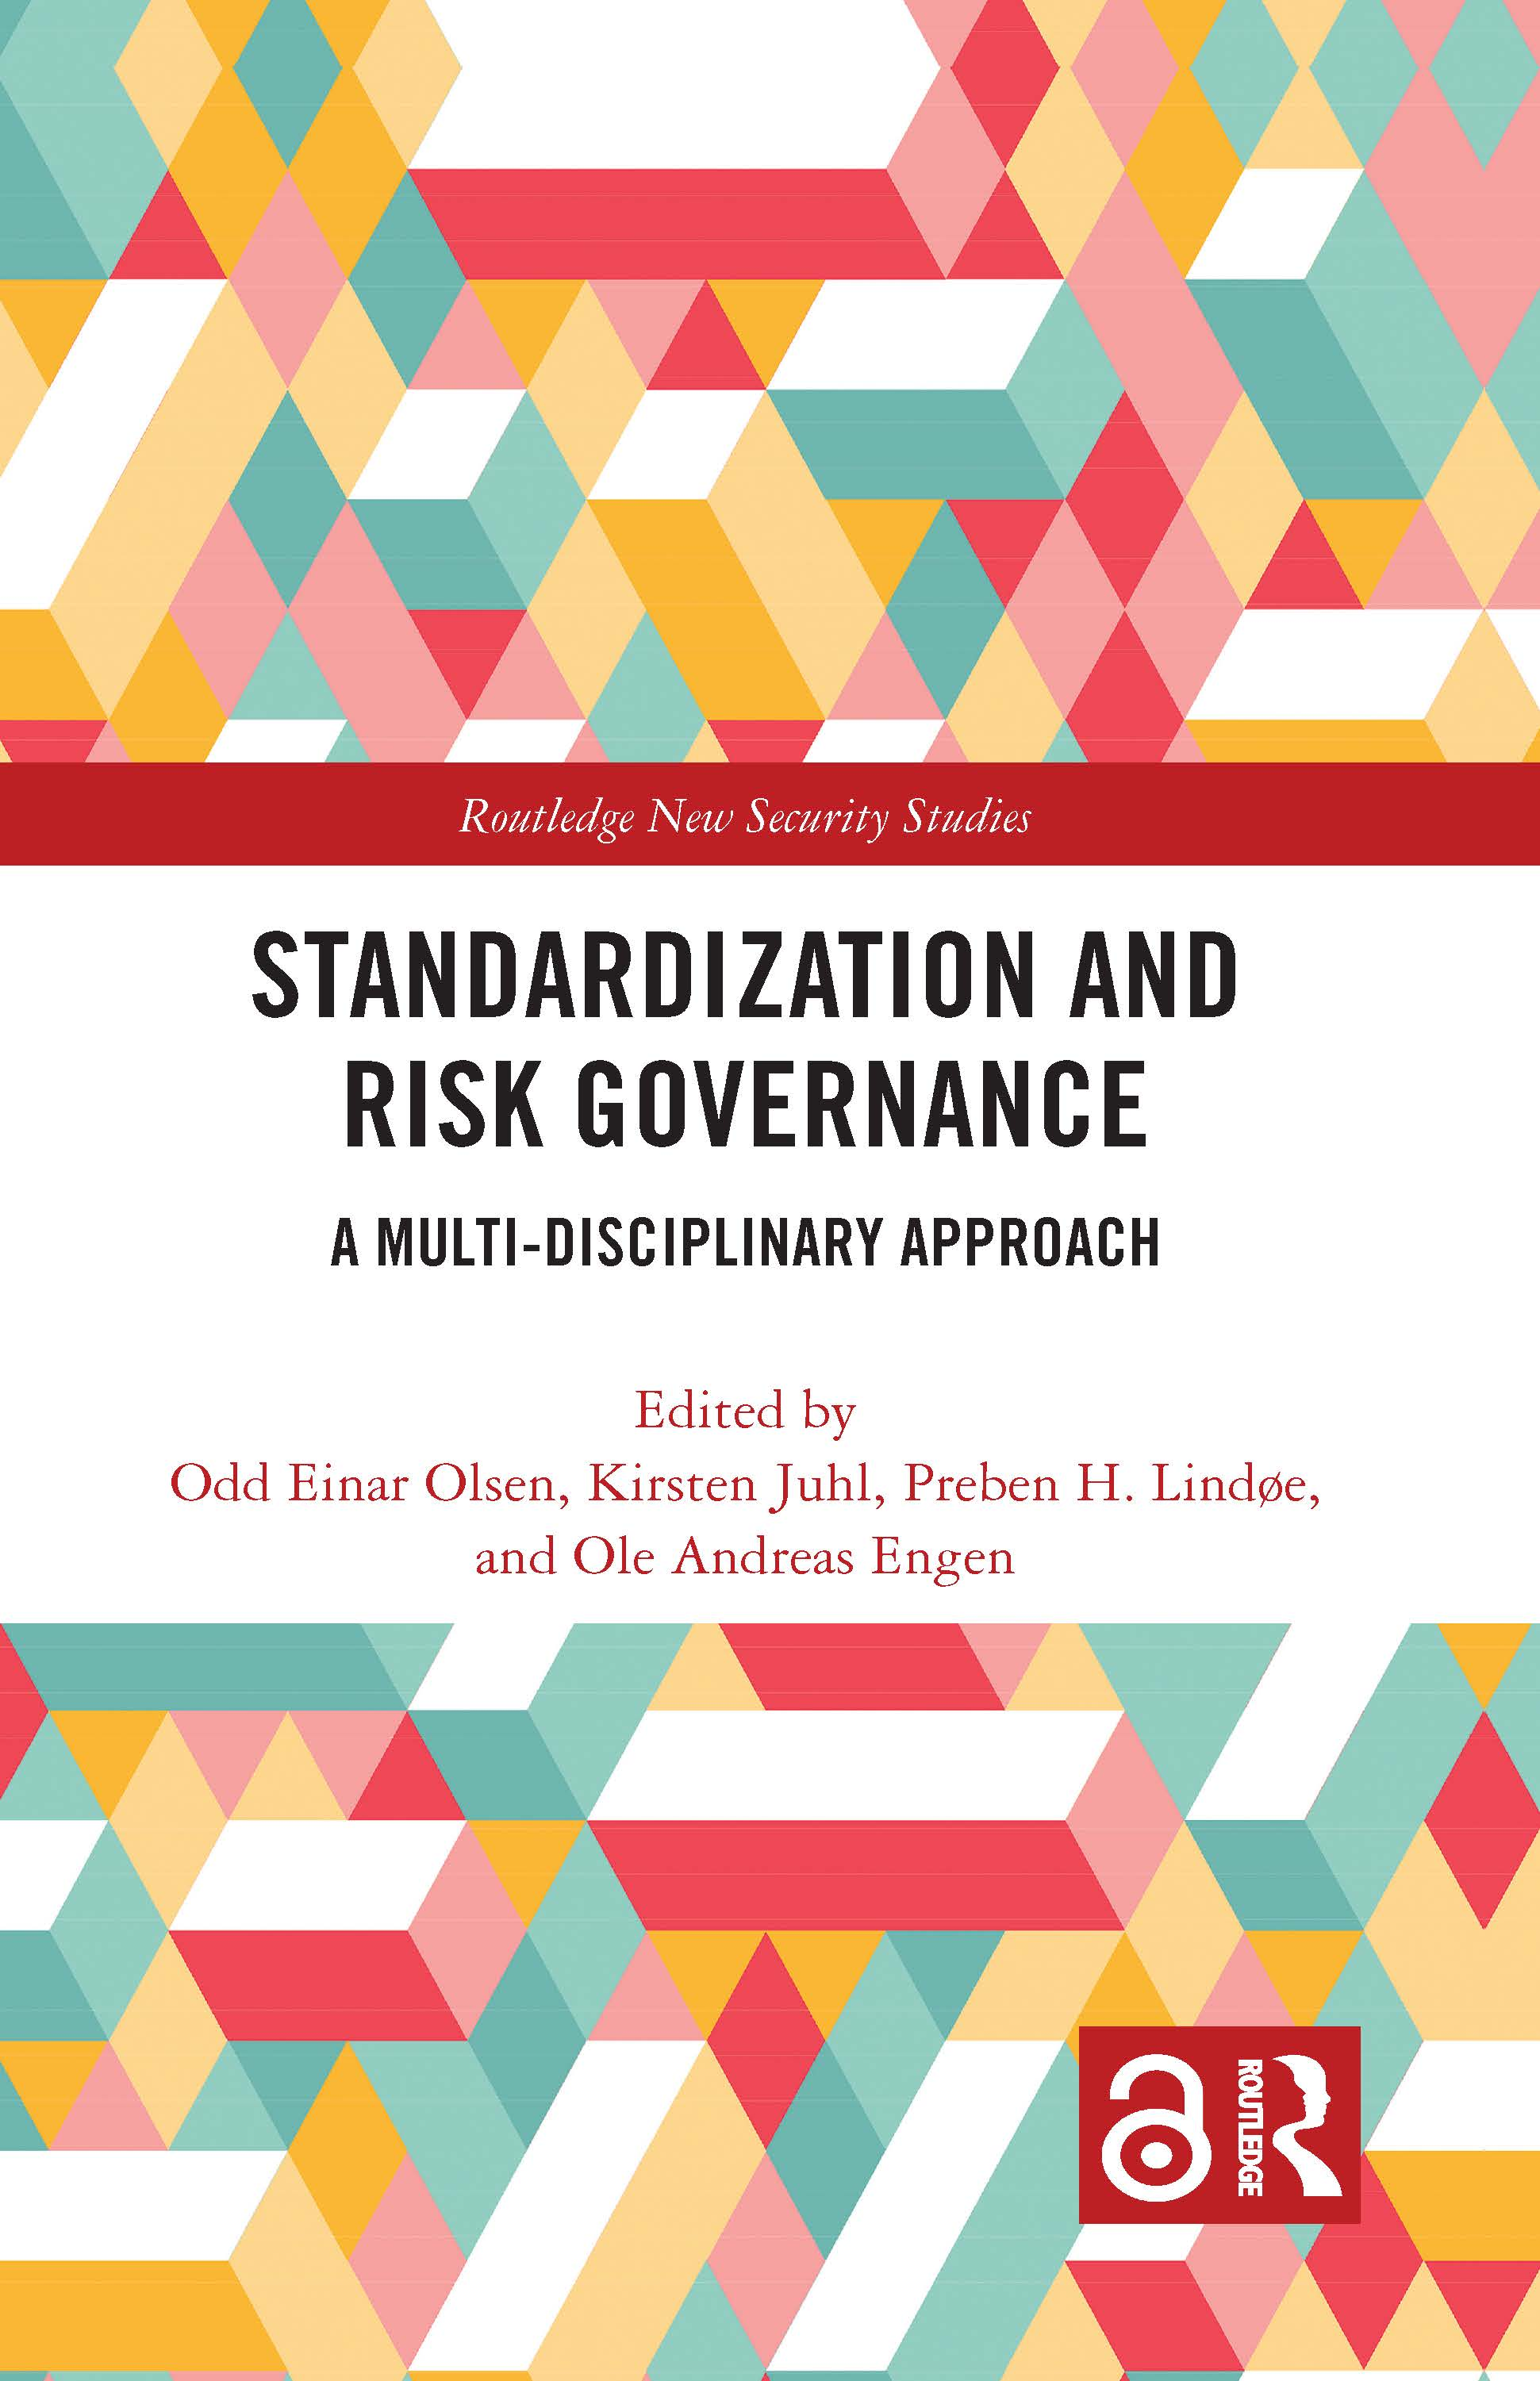 Standardization and Risk Governance: A Multi-Disciplinary Approach book cover